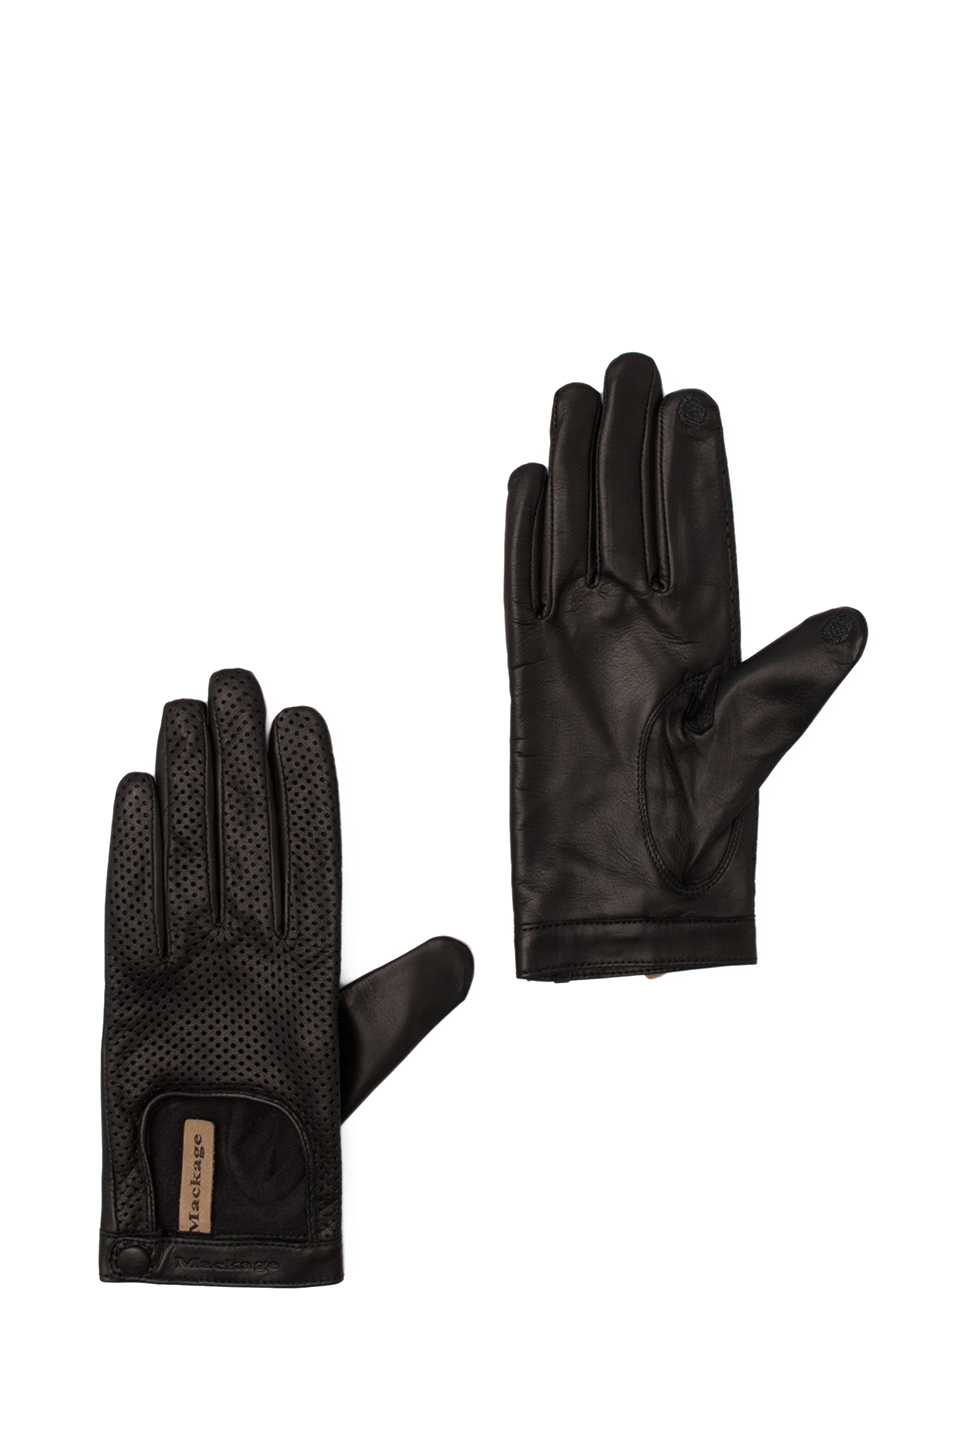 Pittards ladies leather gloves - Gallery Previously Sold At Revolve Women S Leather Gloves